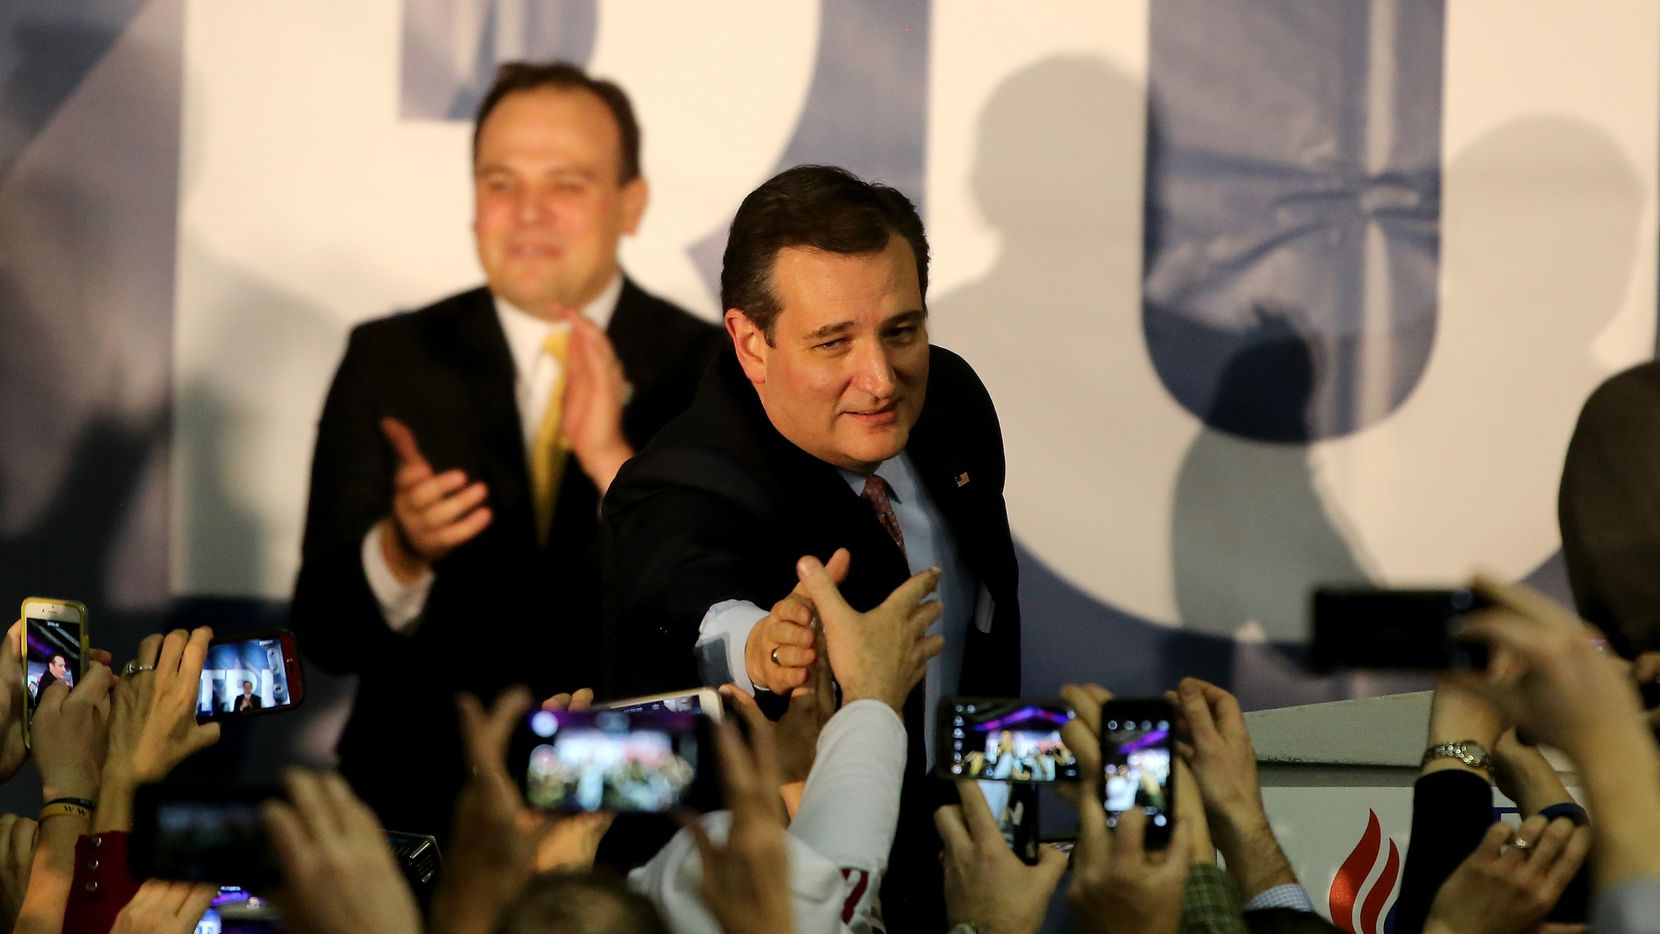 Sen. Ted Cruz reached out to supporters after winning the Iowa Republican caucuses on Monday. (Photo by Christopher Furlong/Getty Images)